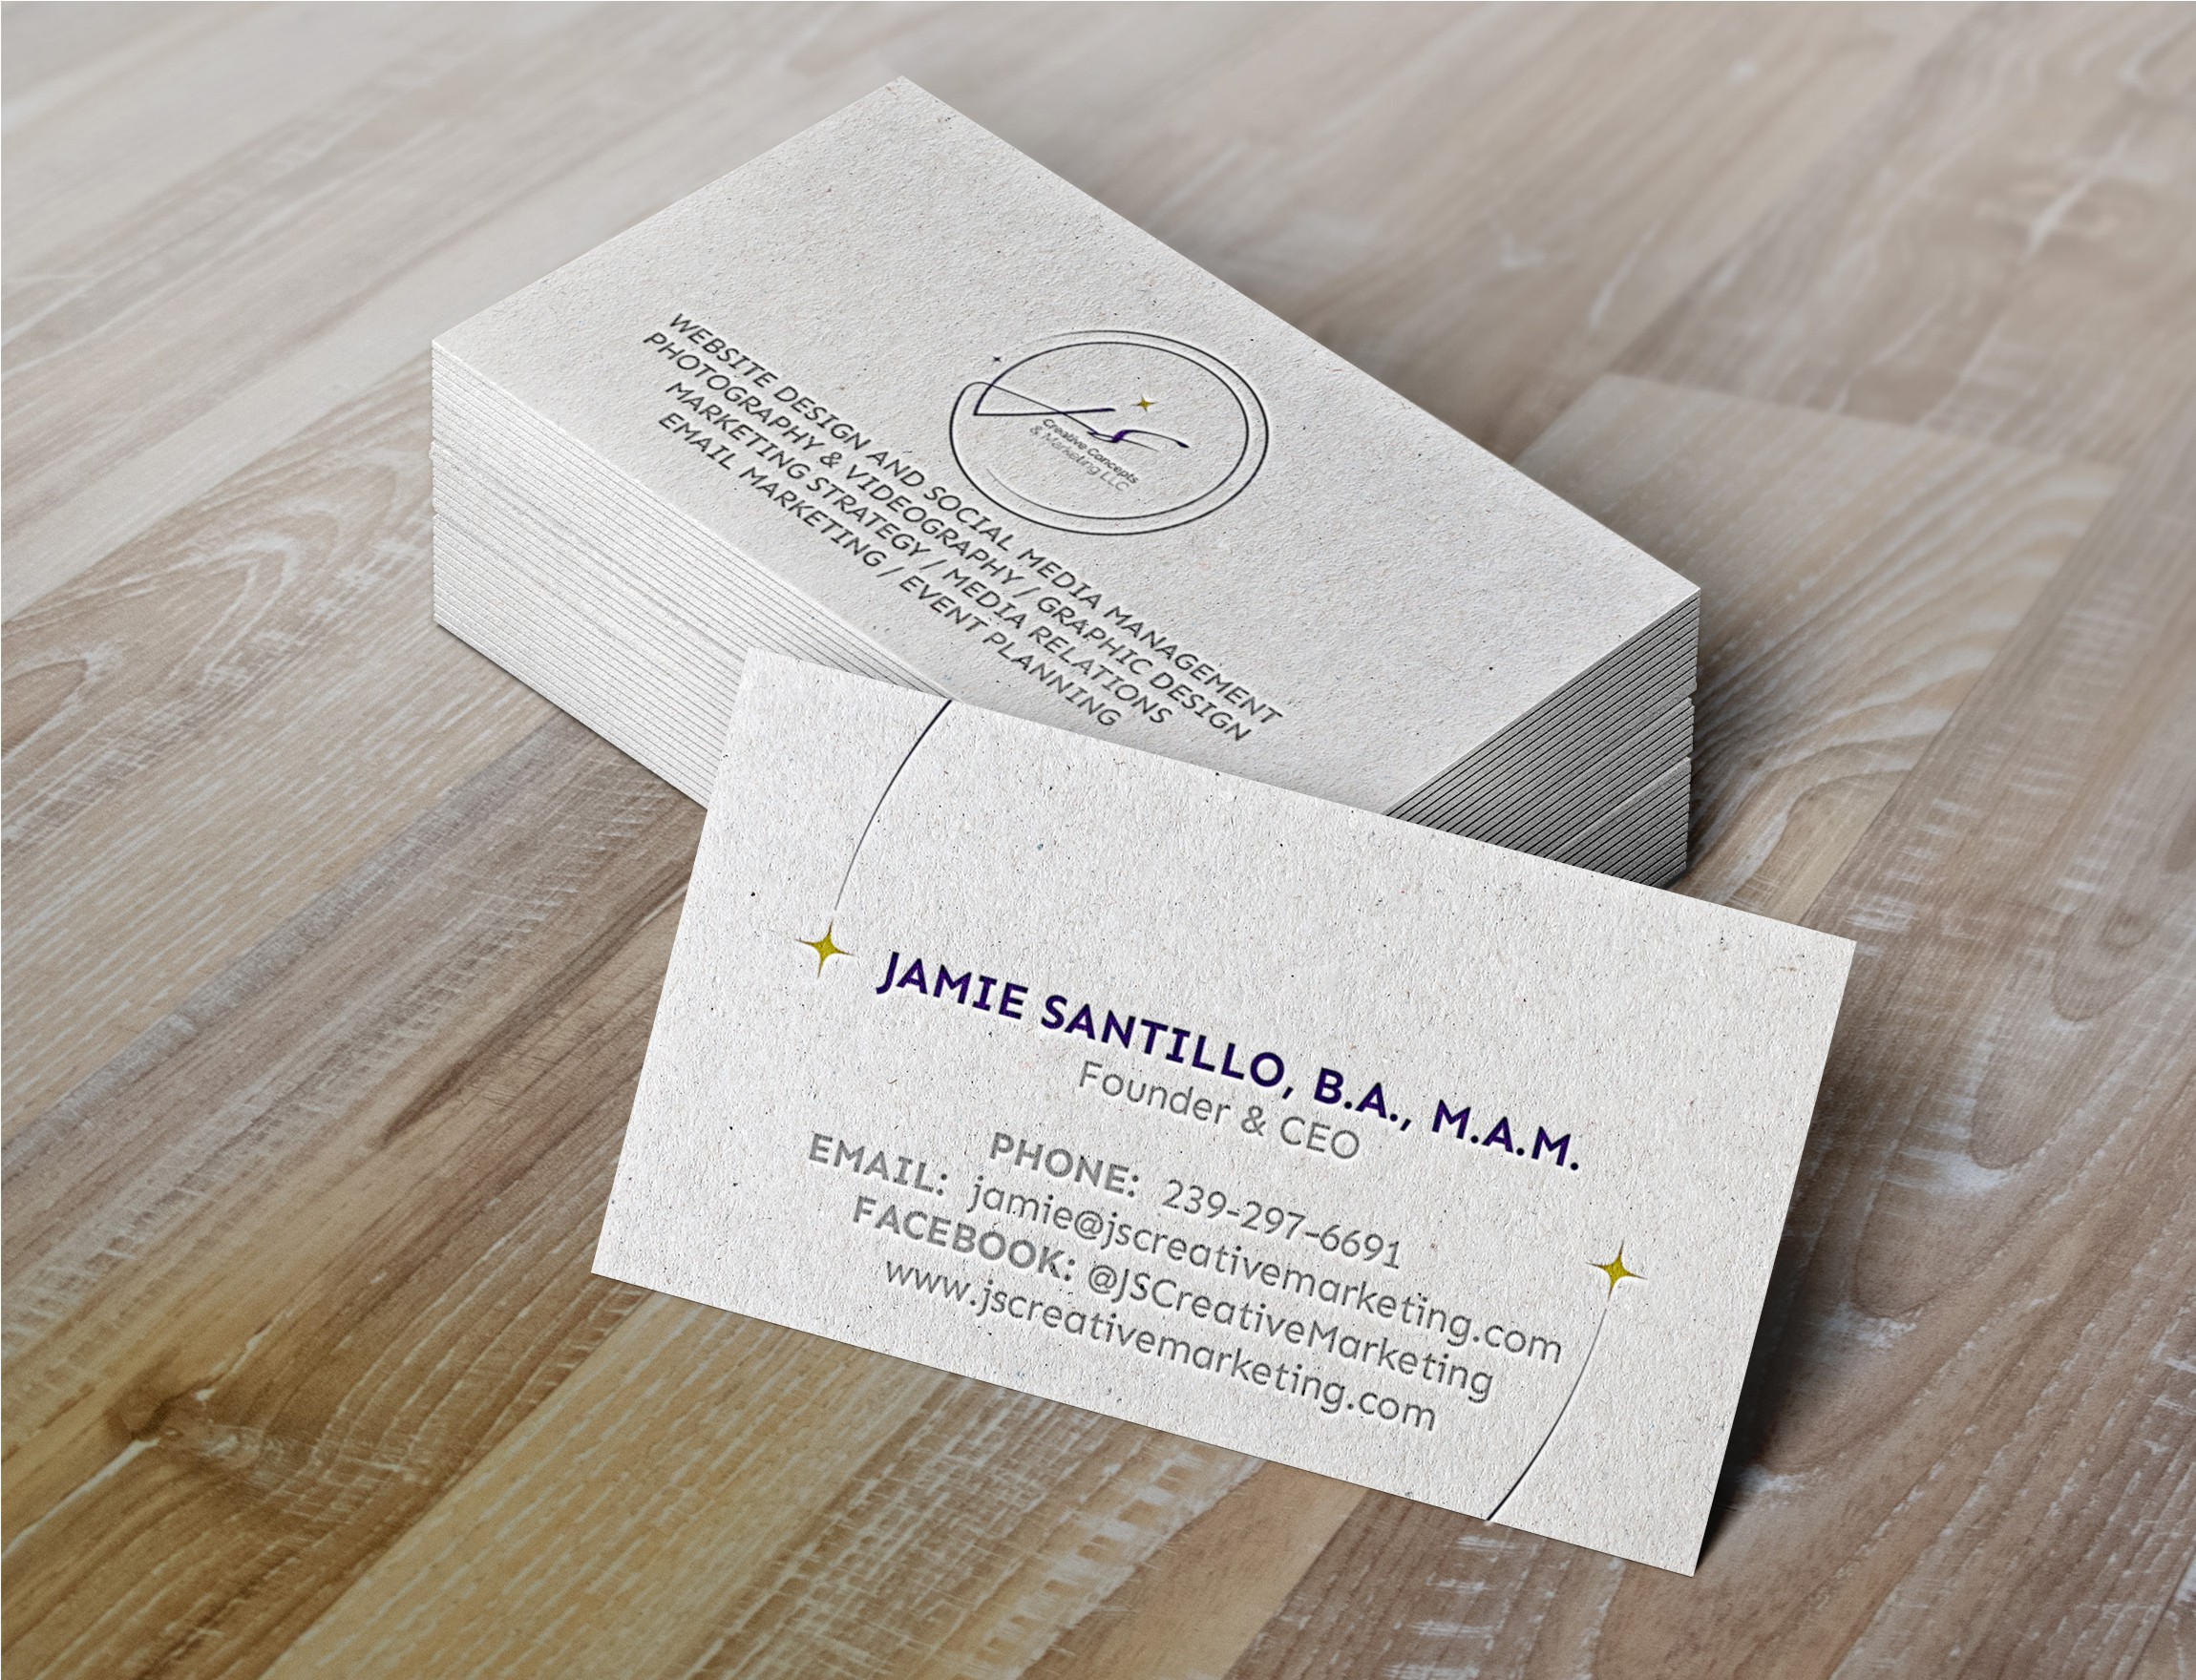 JS Creative Concepts & Marketing Business Card